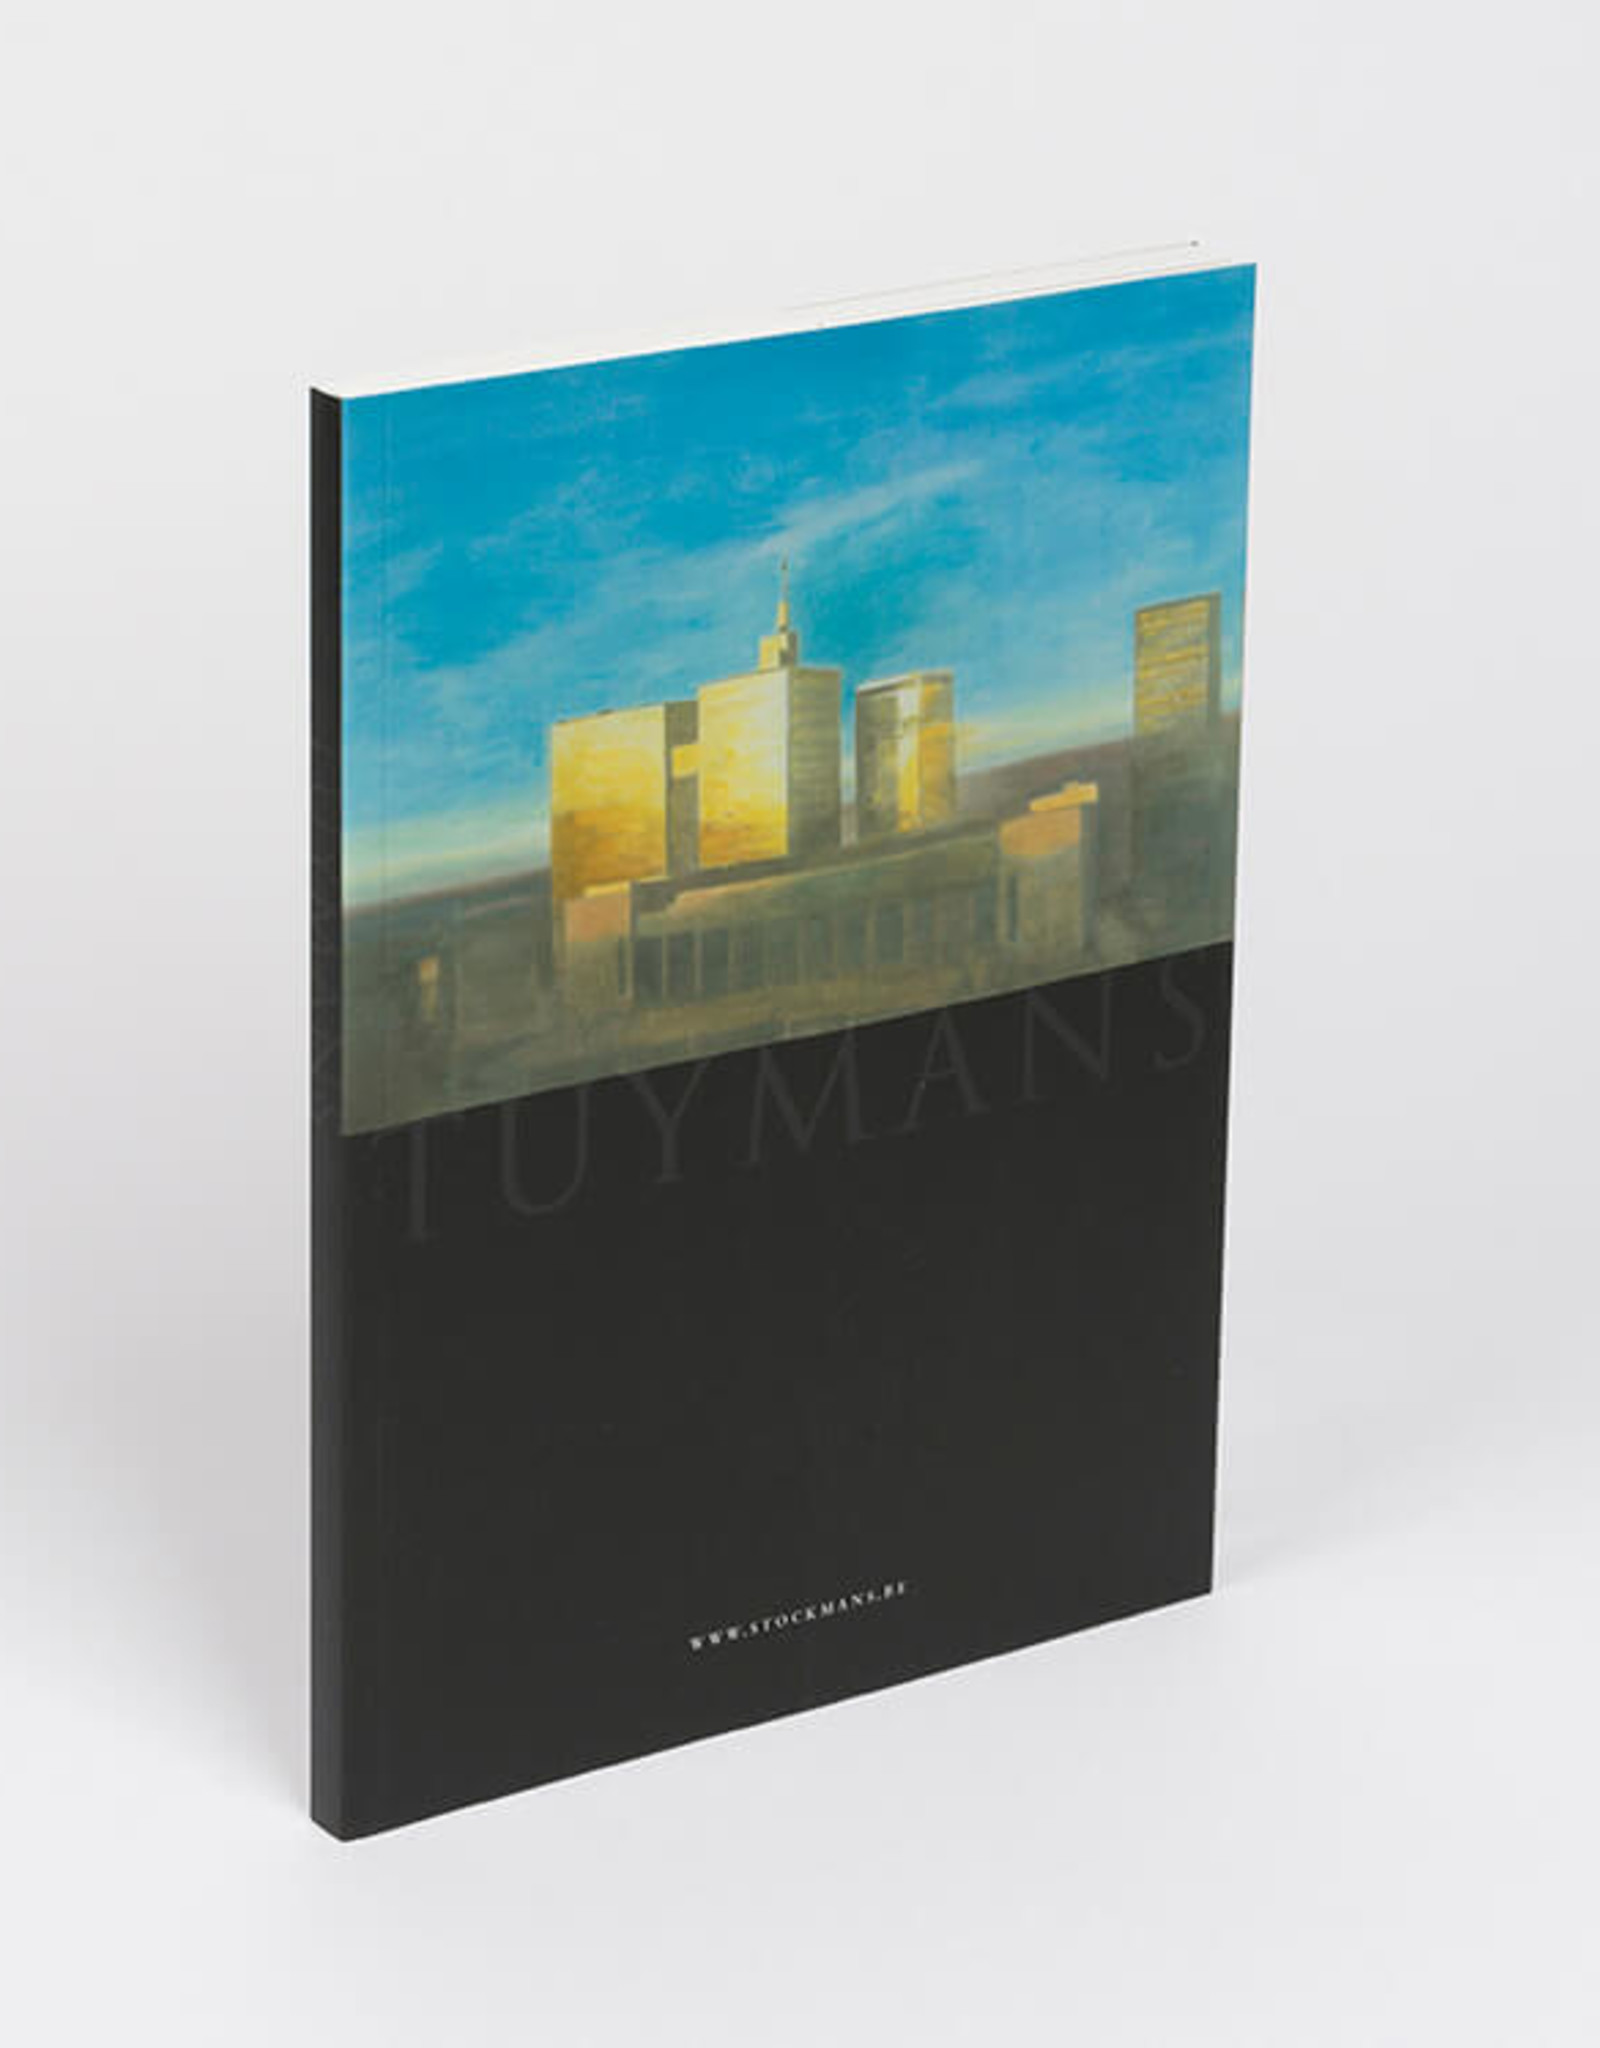 Luc Tuymans - catalogue Budapest & Warsaw